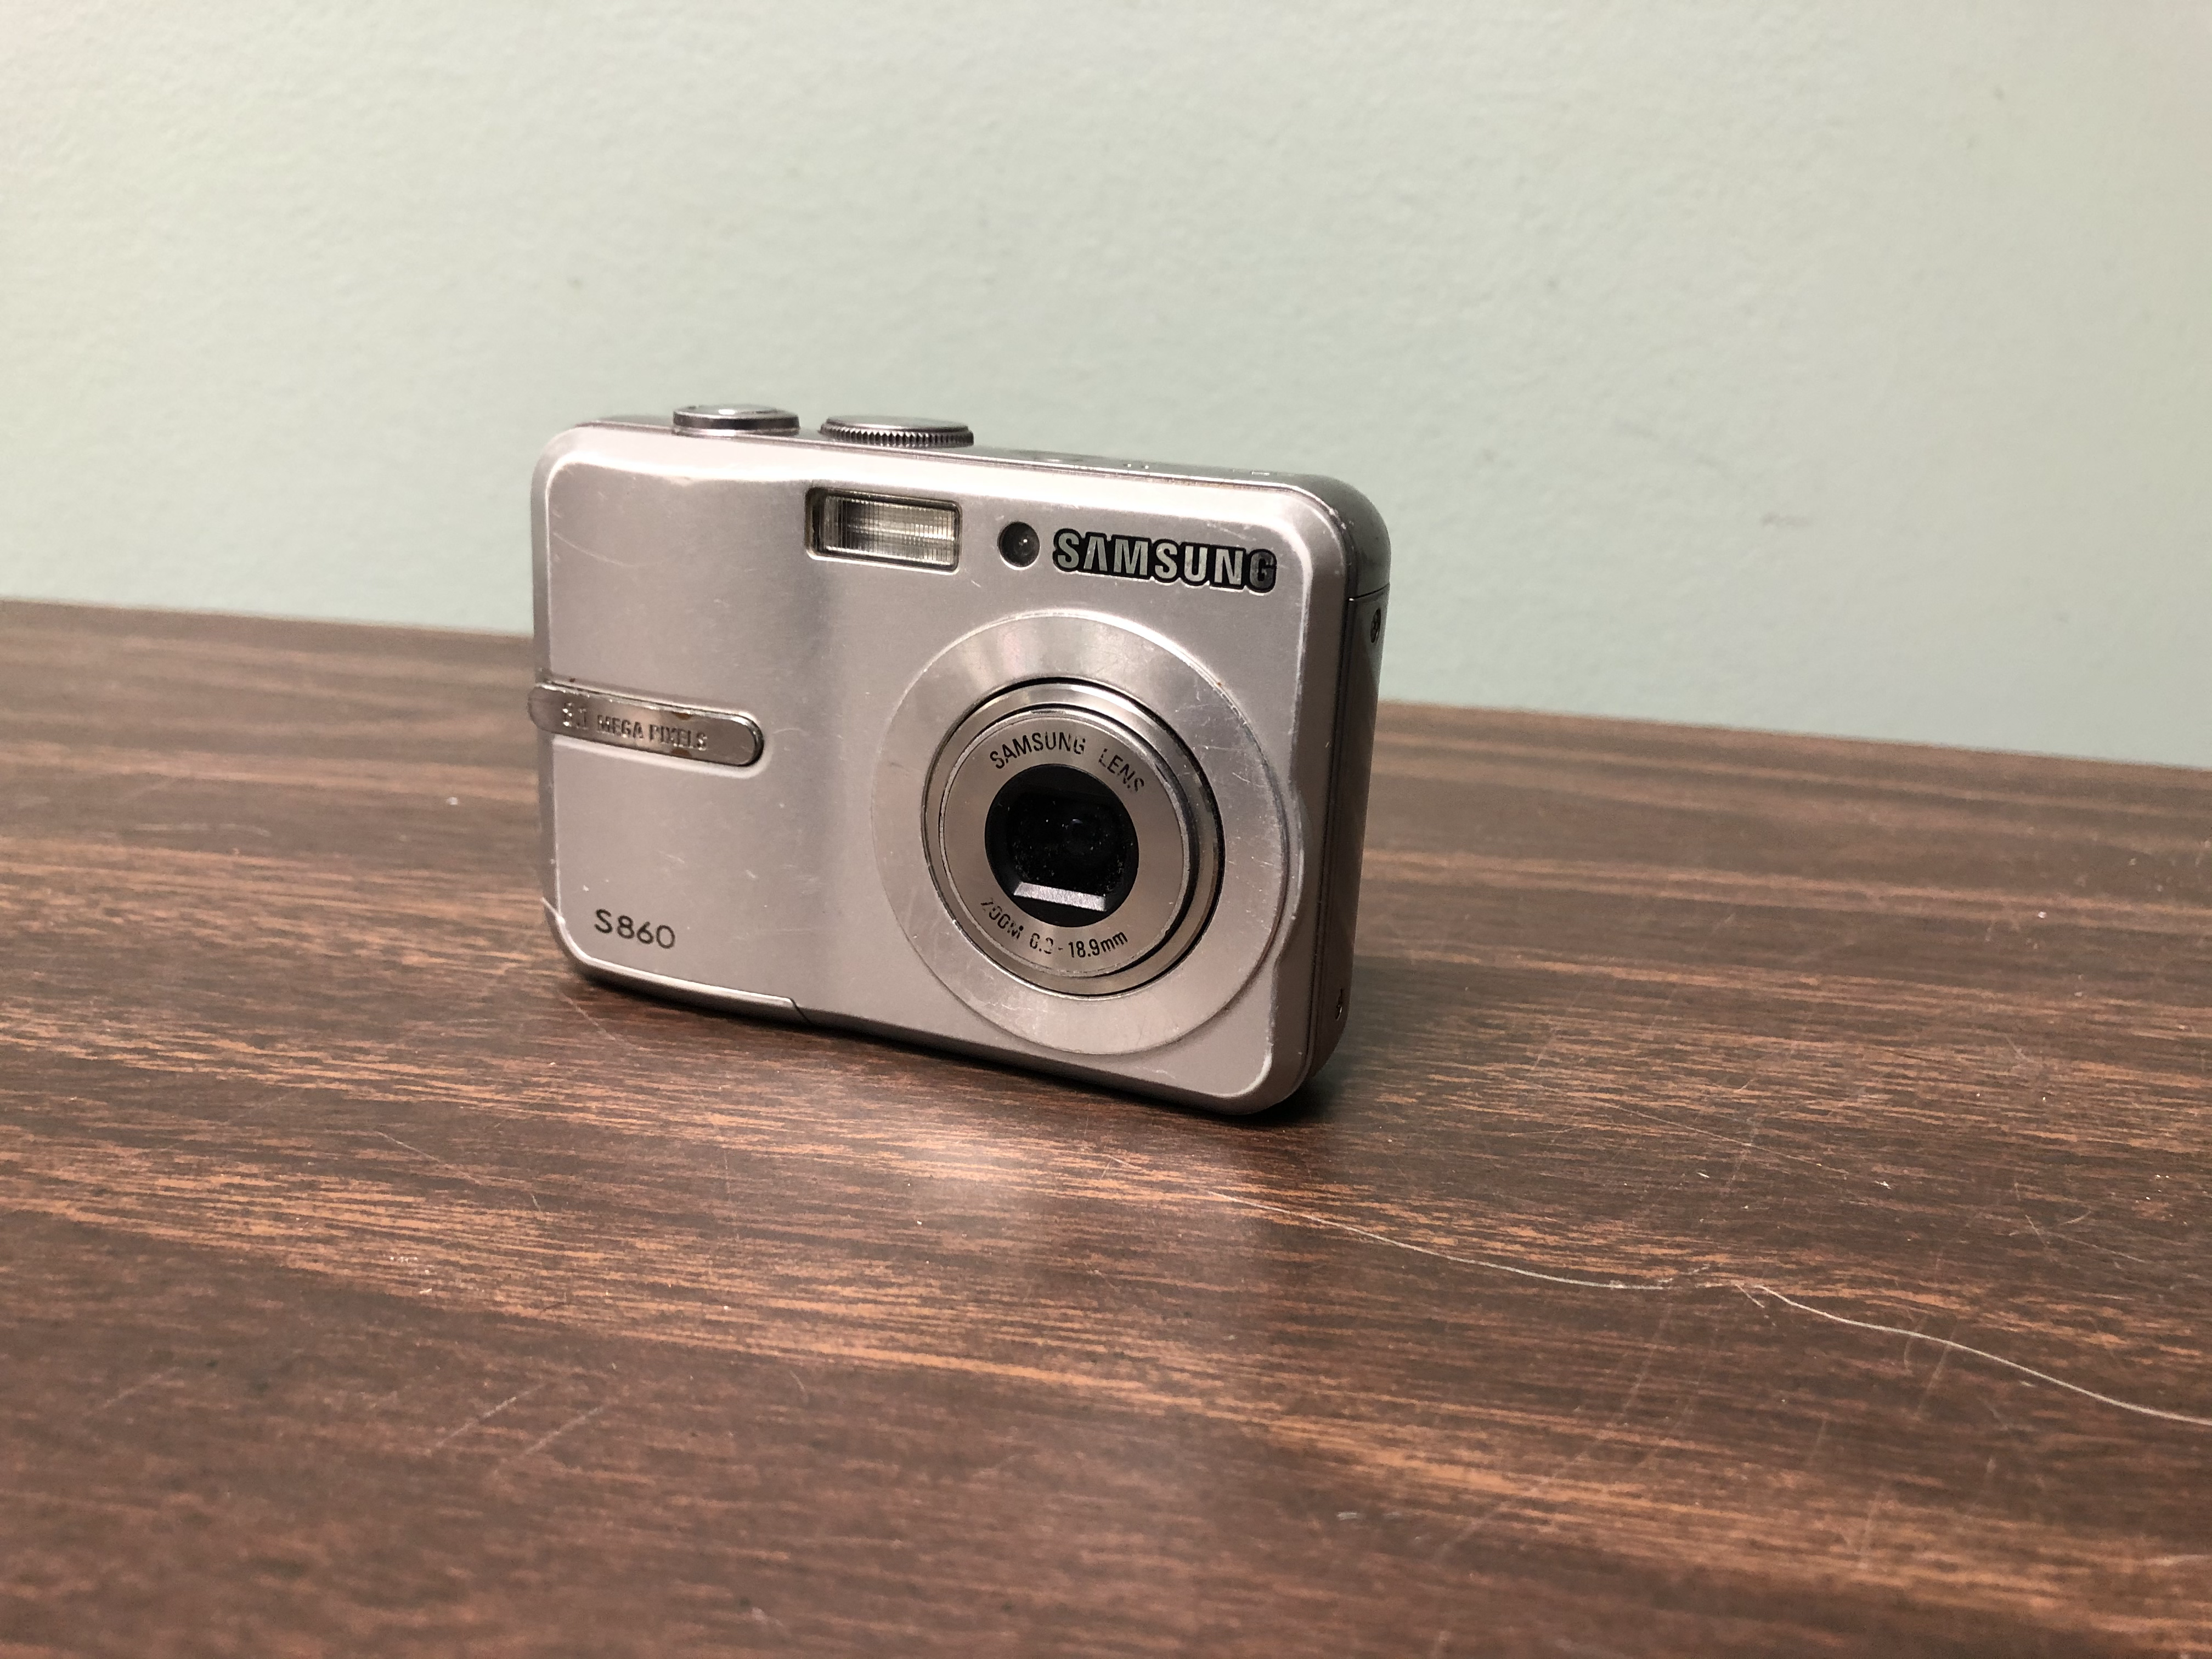 Samsung Digital Camera (functional)